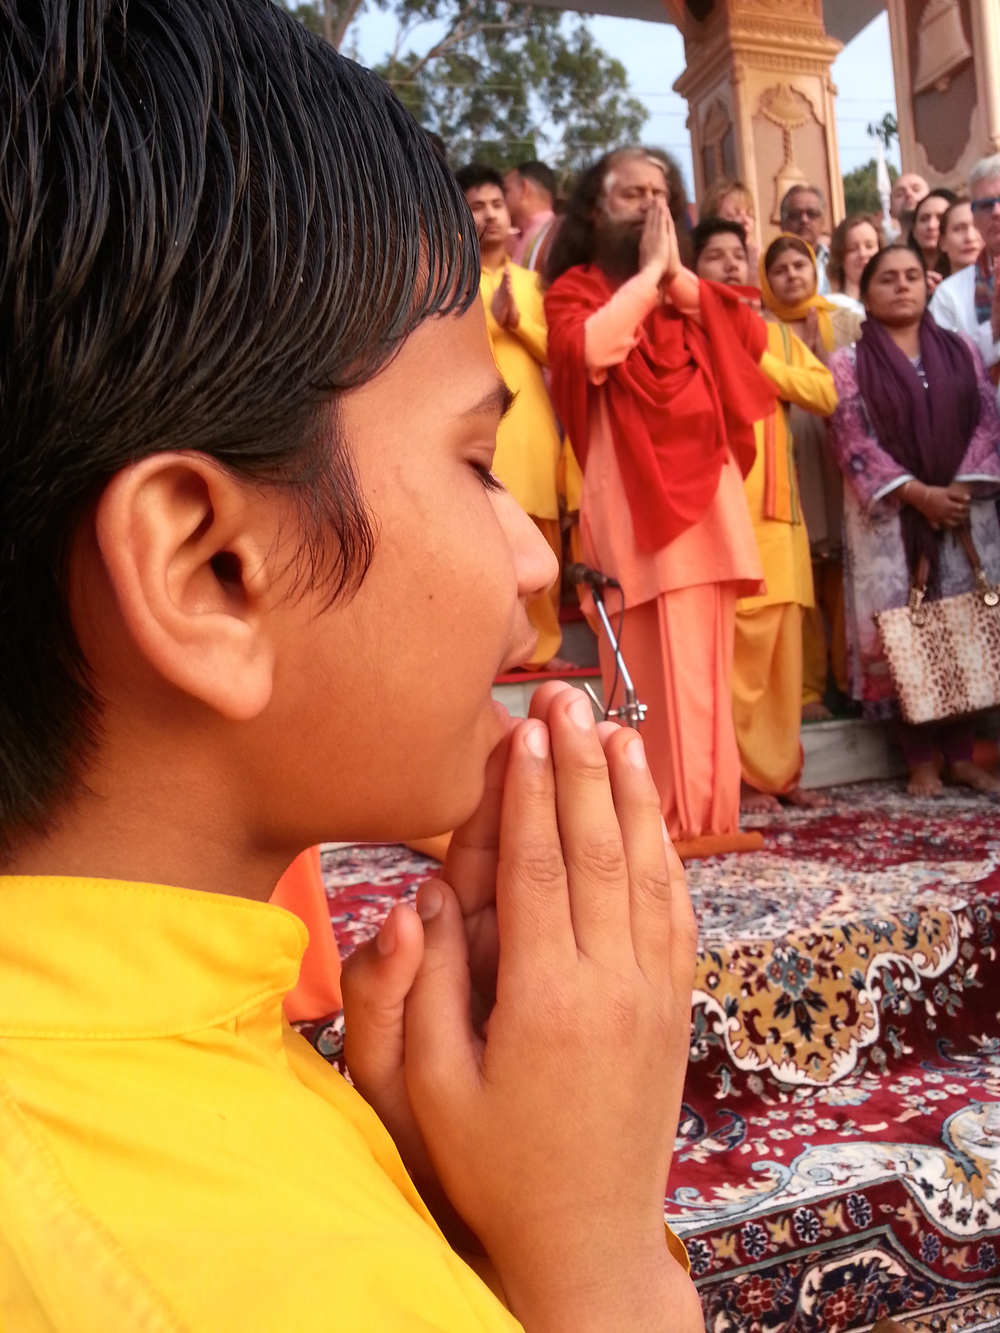 Hindu devotees sing and pray along the Ganges River.